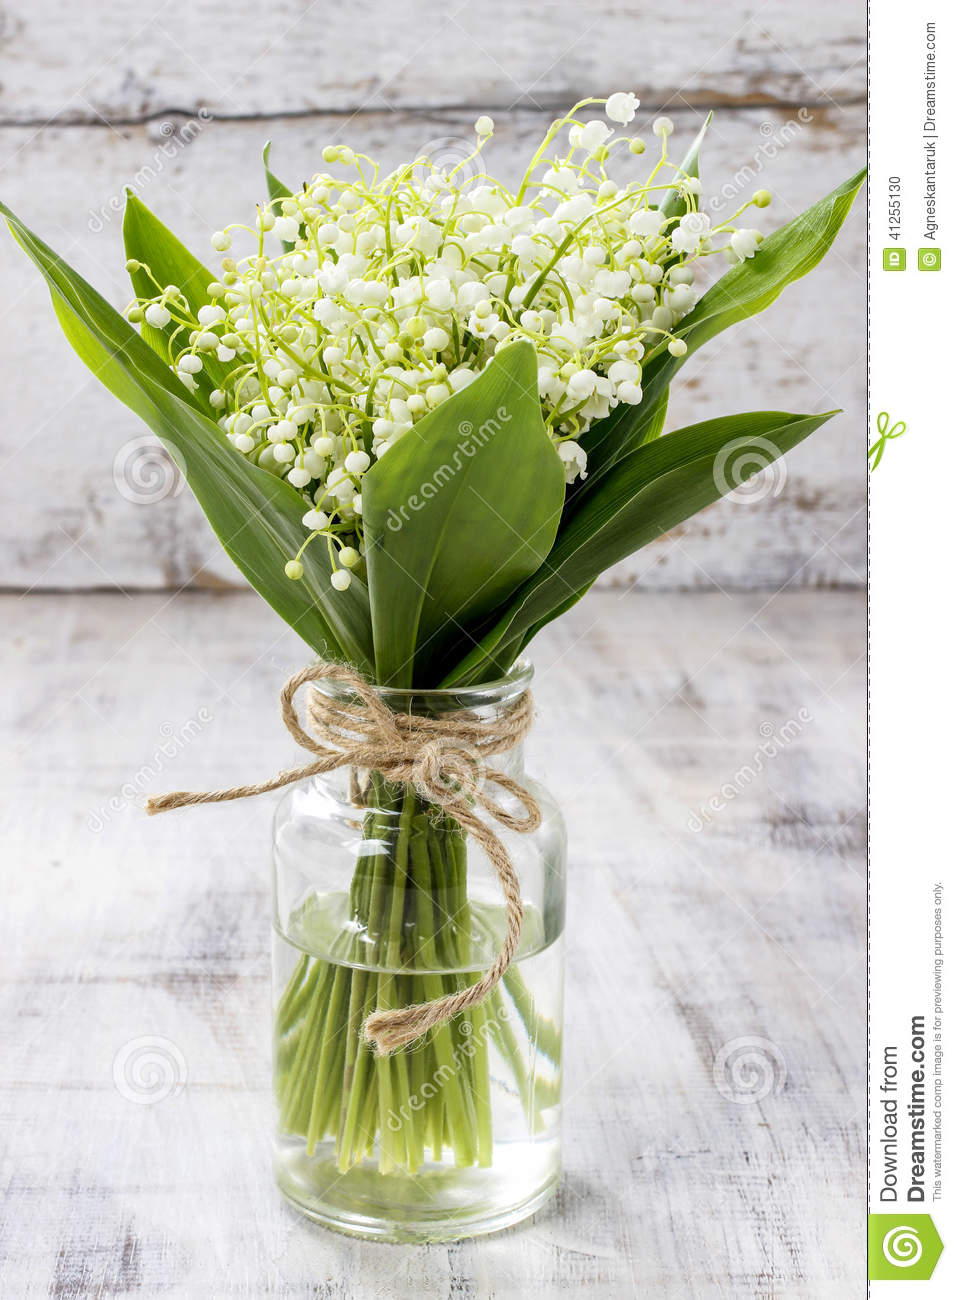 Bouquet lily valley flowers spring flower decoration 41255130g bouquet lily valley flowers spring flower decoration 41255130g 9571300 wedding ideas pinterest weddings izmirmasajfo Images